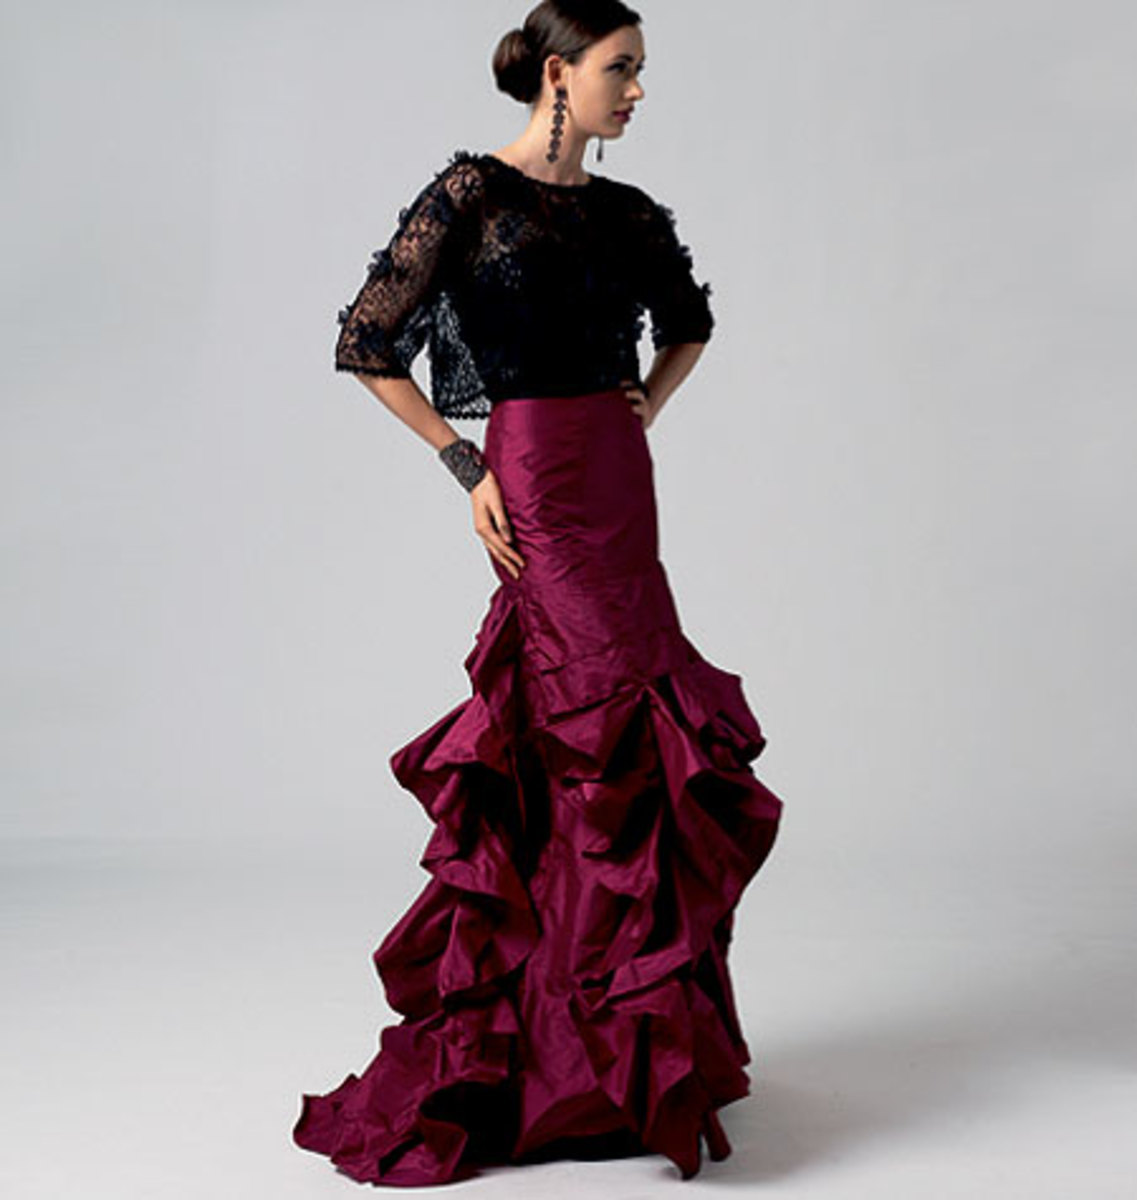 Incorporate Steampunk Into Your Daily Fashions for a Signature Look